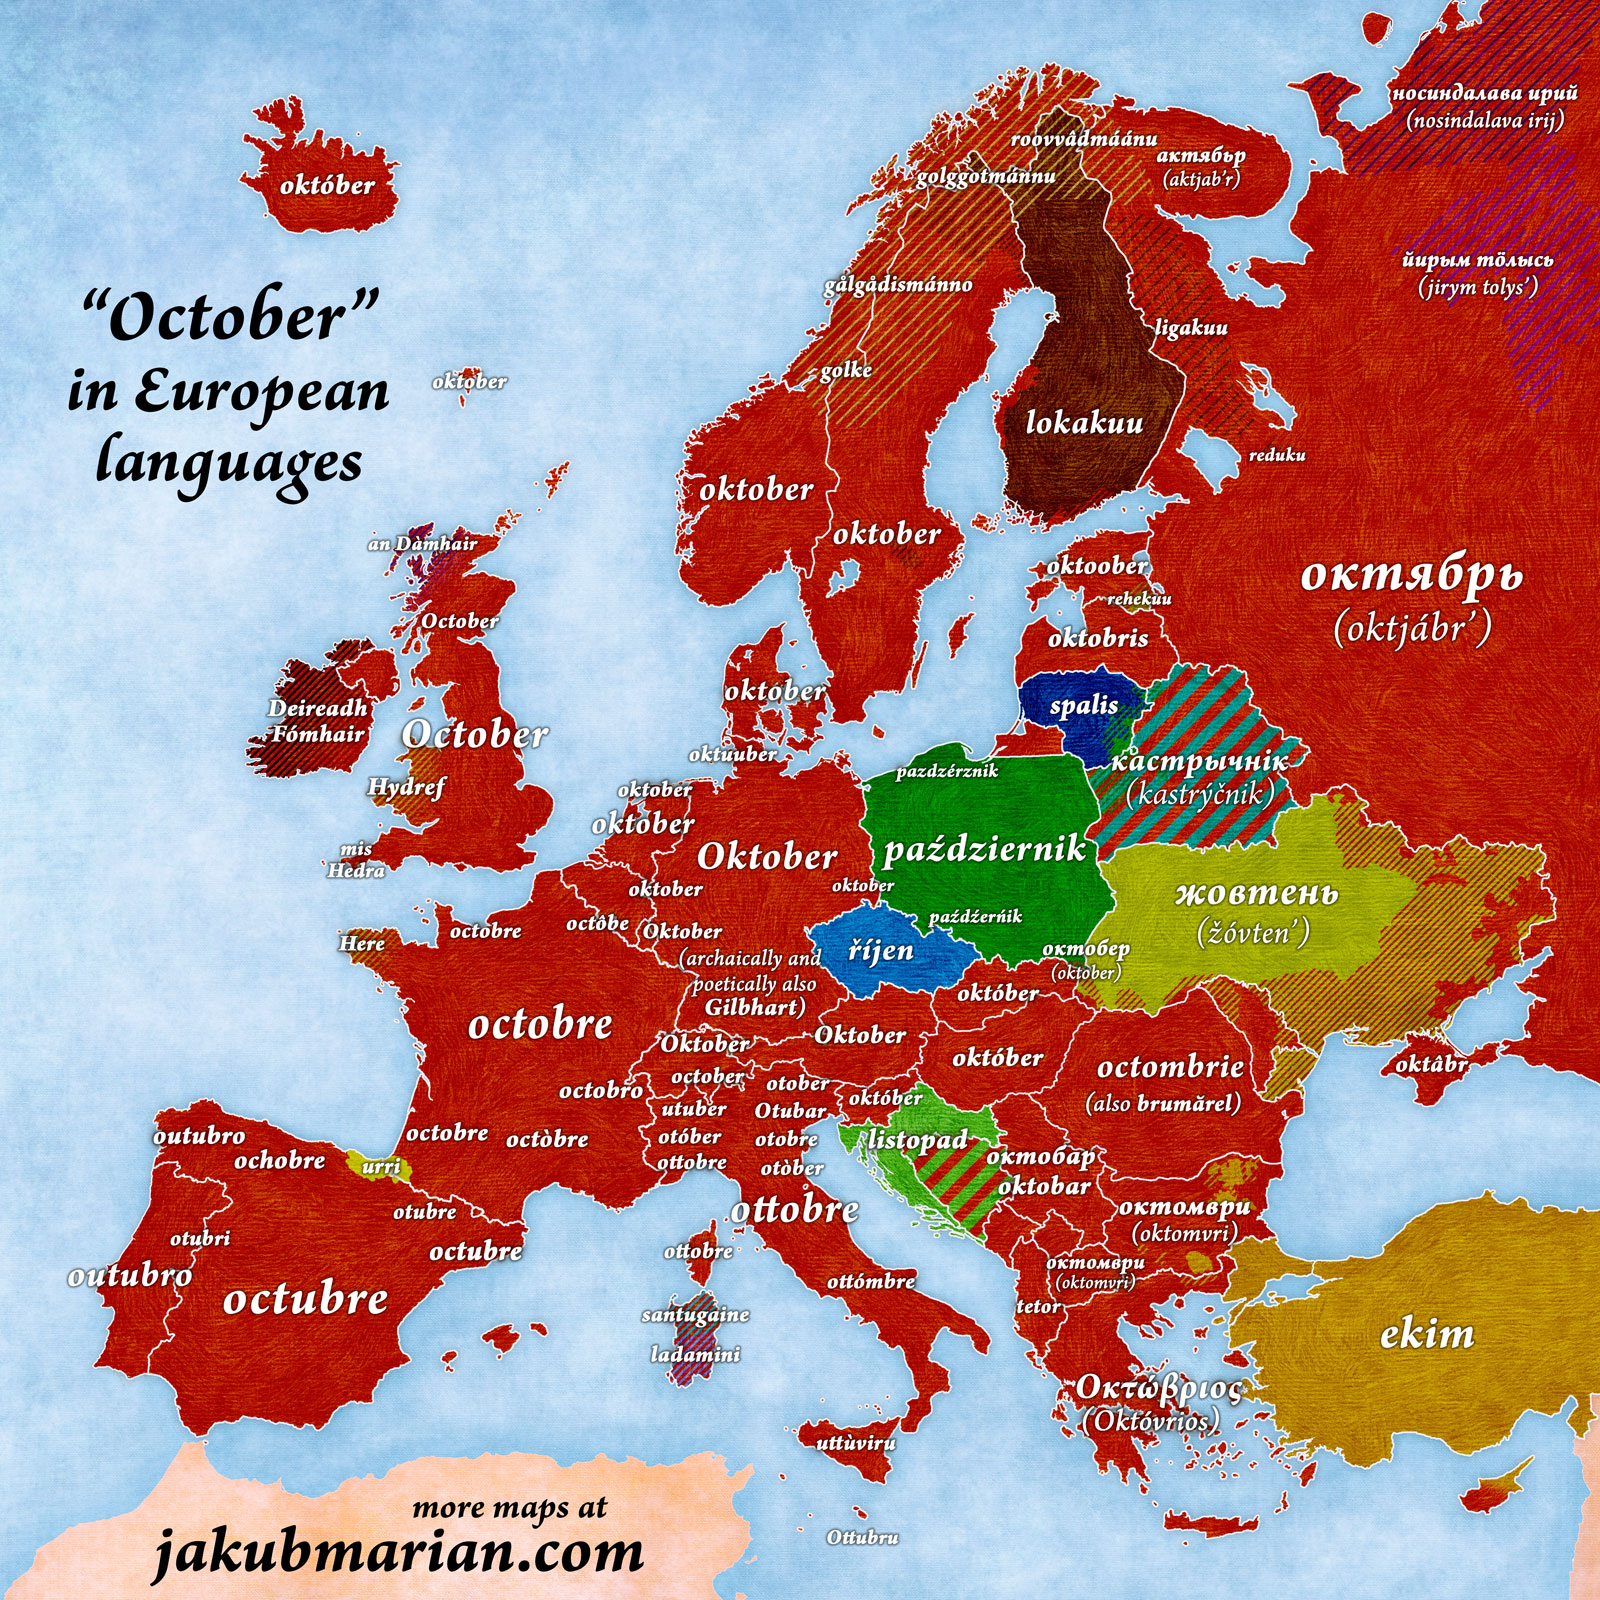 October in European languages